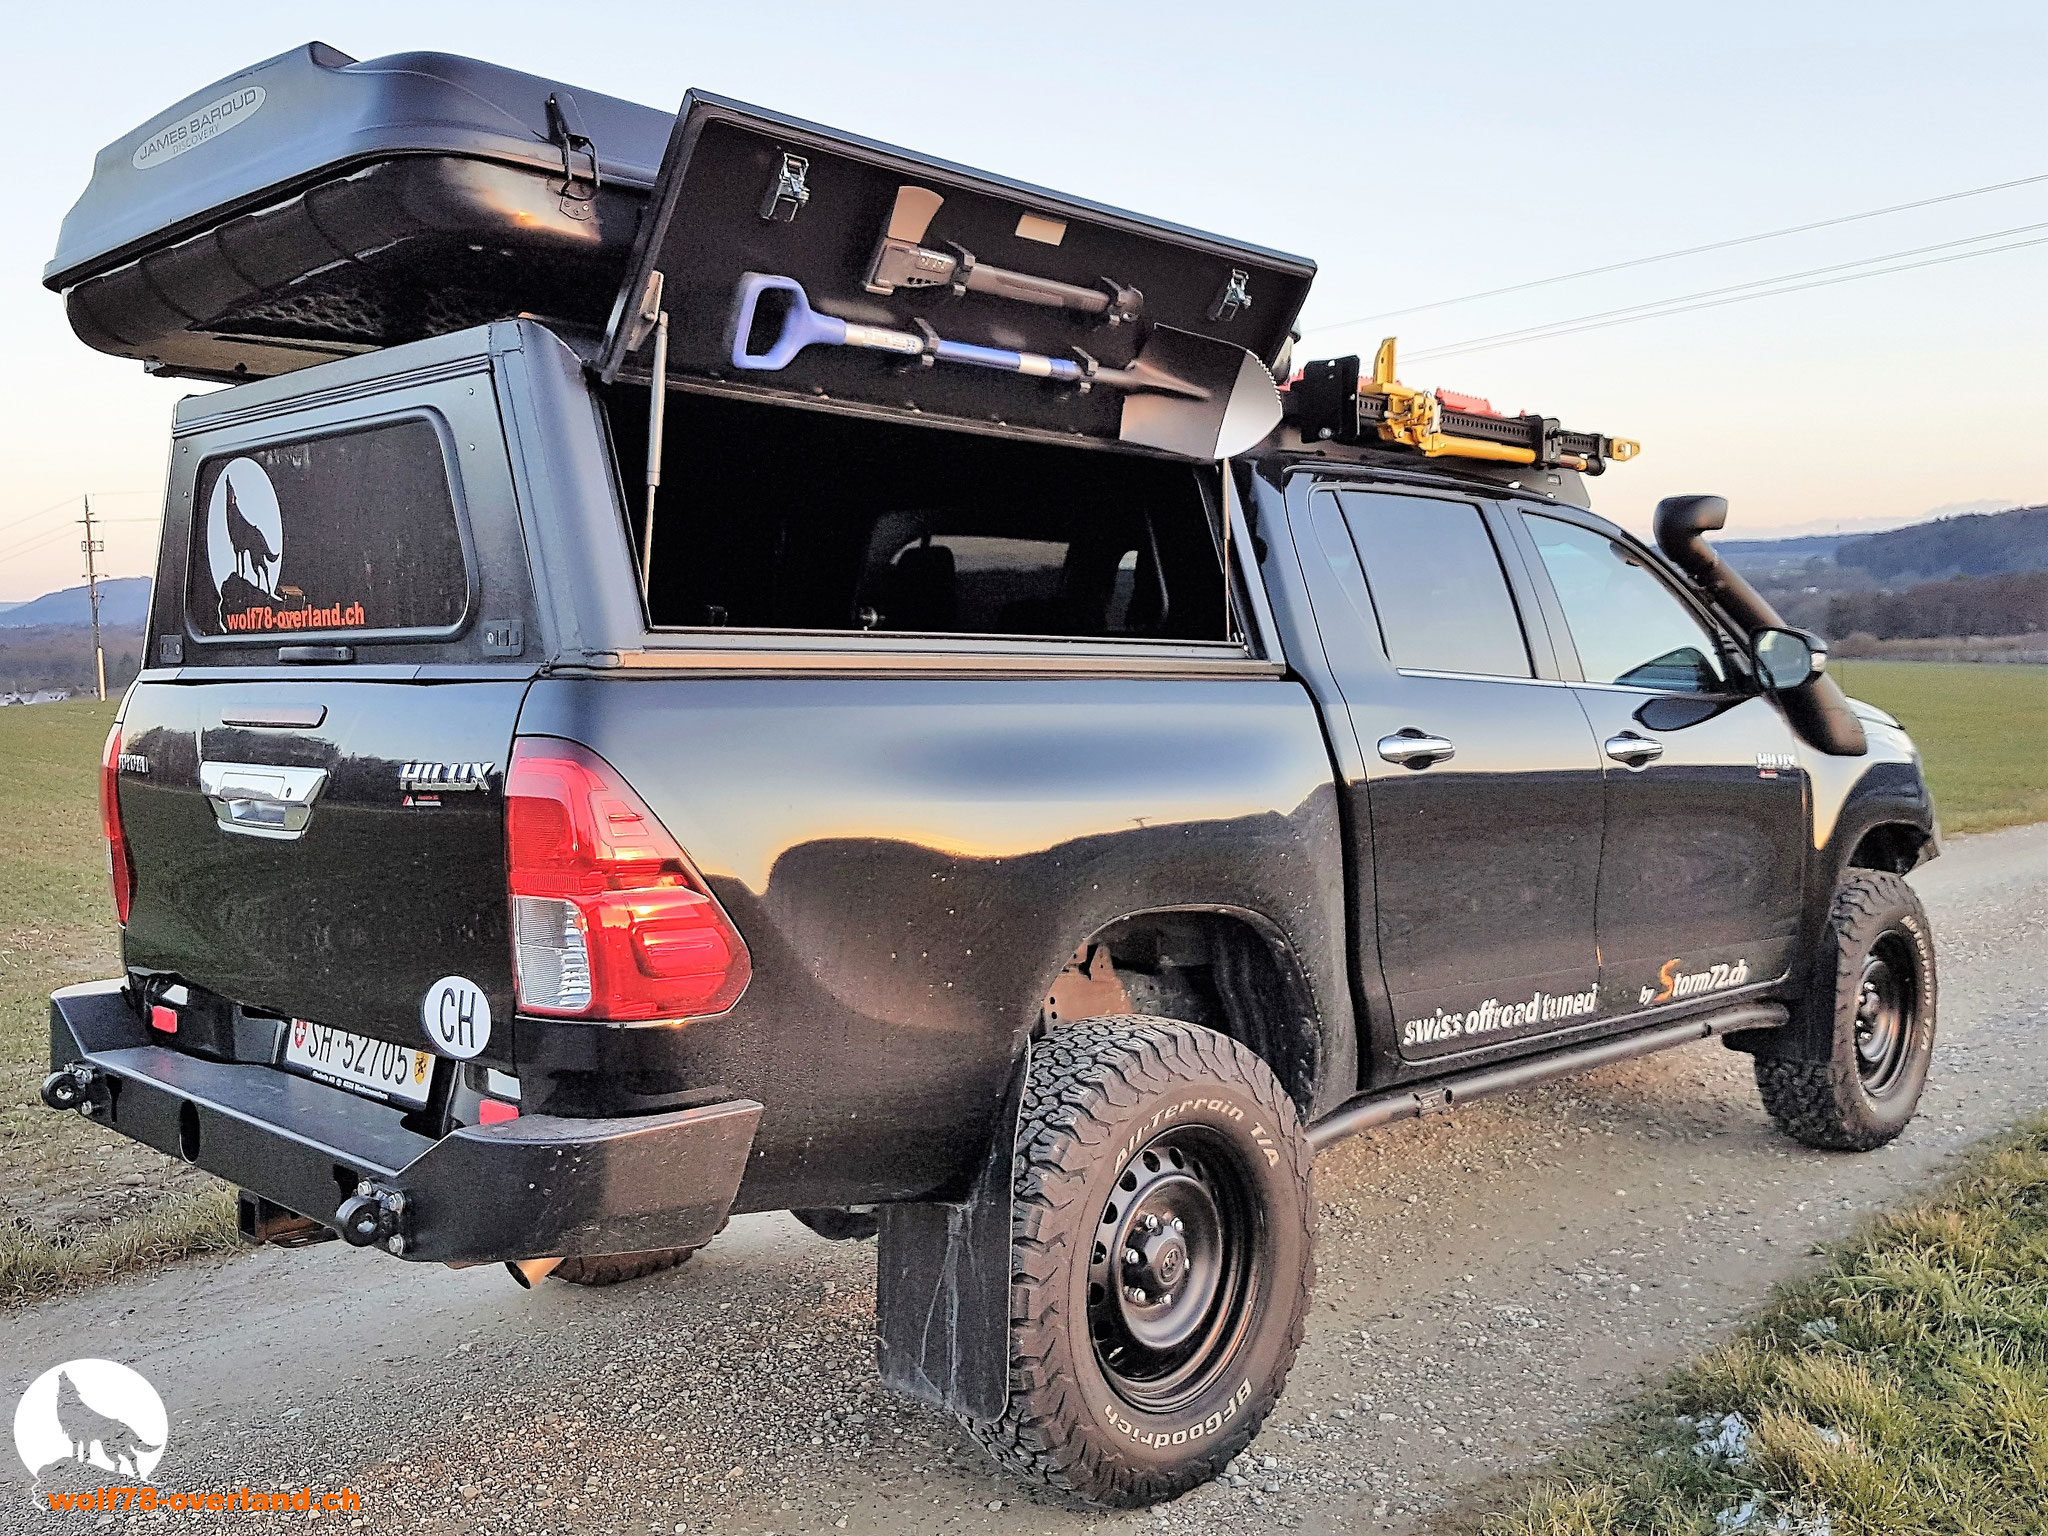 Toyota Hilux Revo rear Steel bumper Alu-cab 2016 2017 #ProjektBlackwolf offroad overland expedition 4x4 ARB Frontrunner Rocksliders Roofrack Rival skidplate James Baroud Discovery Awining Markise bfgoodrich 265/70R17 TJM Sknorkel wolf78-overland.ch